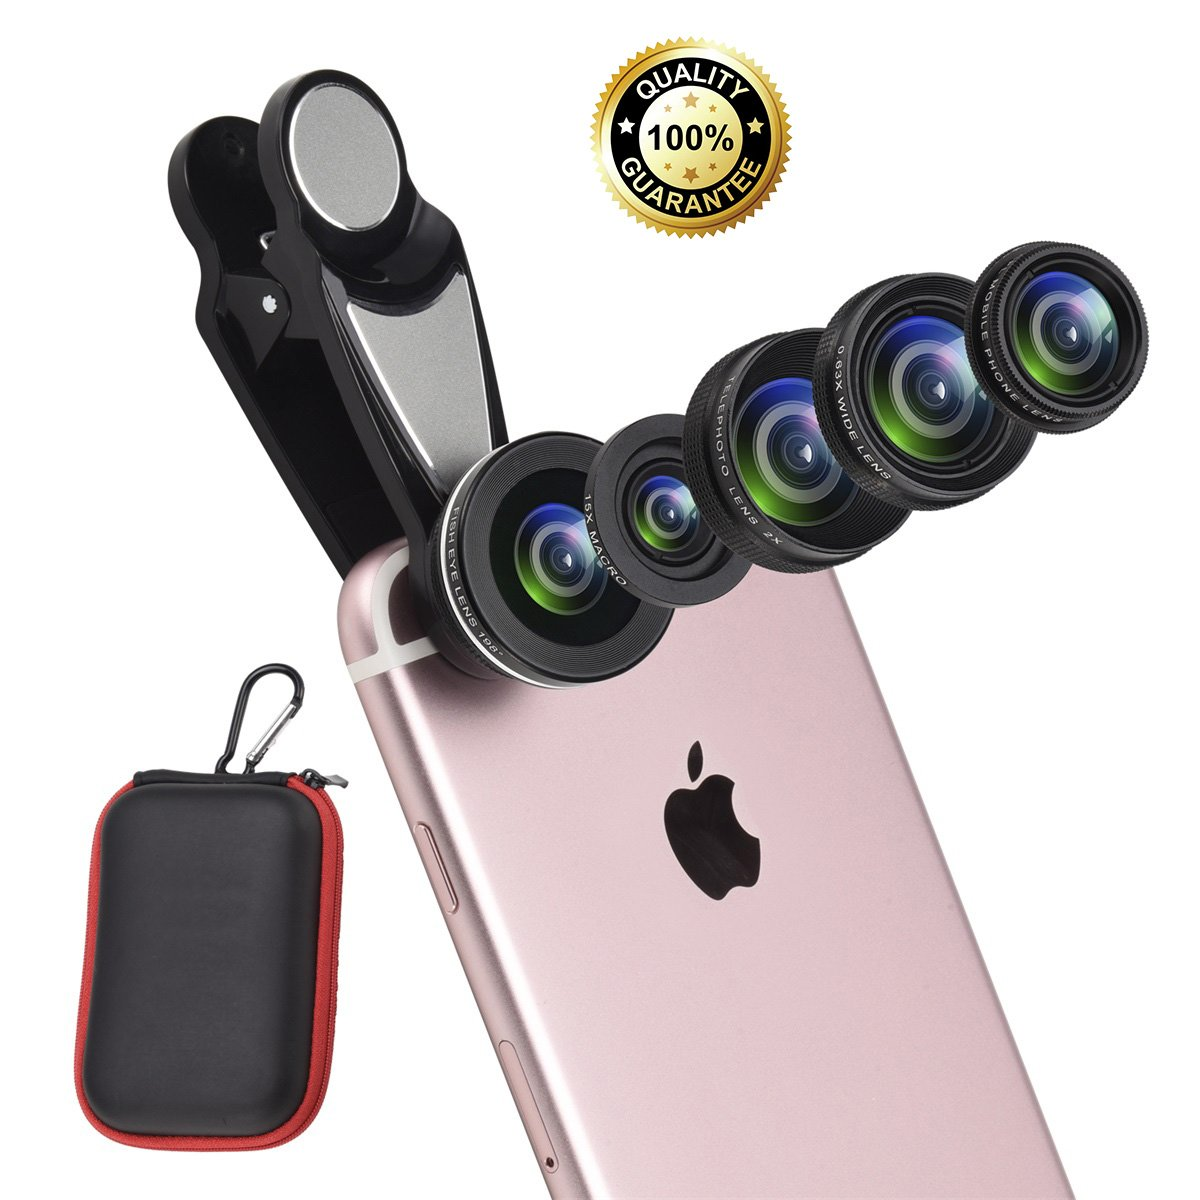 6 in 1 Cell Phone Lens Kit with Case, included Super Fisheye Lens + 0.63x Wide Angle lens + 15x Macro Lens + 2x Telephoto Lens+ Kaleidoscope Lens + CPL polarizer Lens by Febote